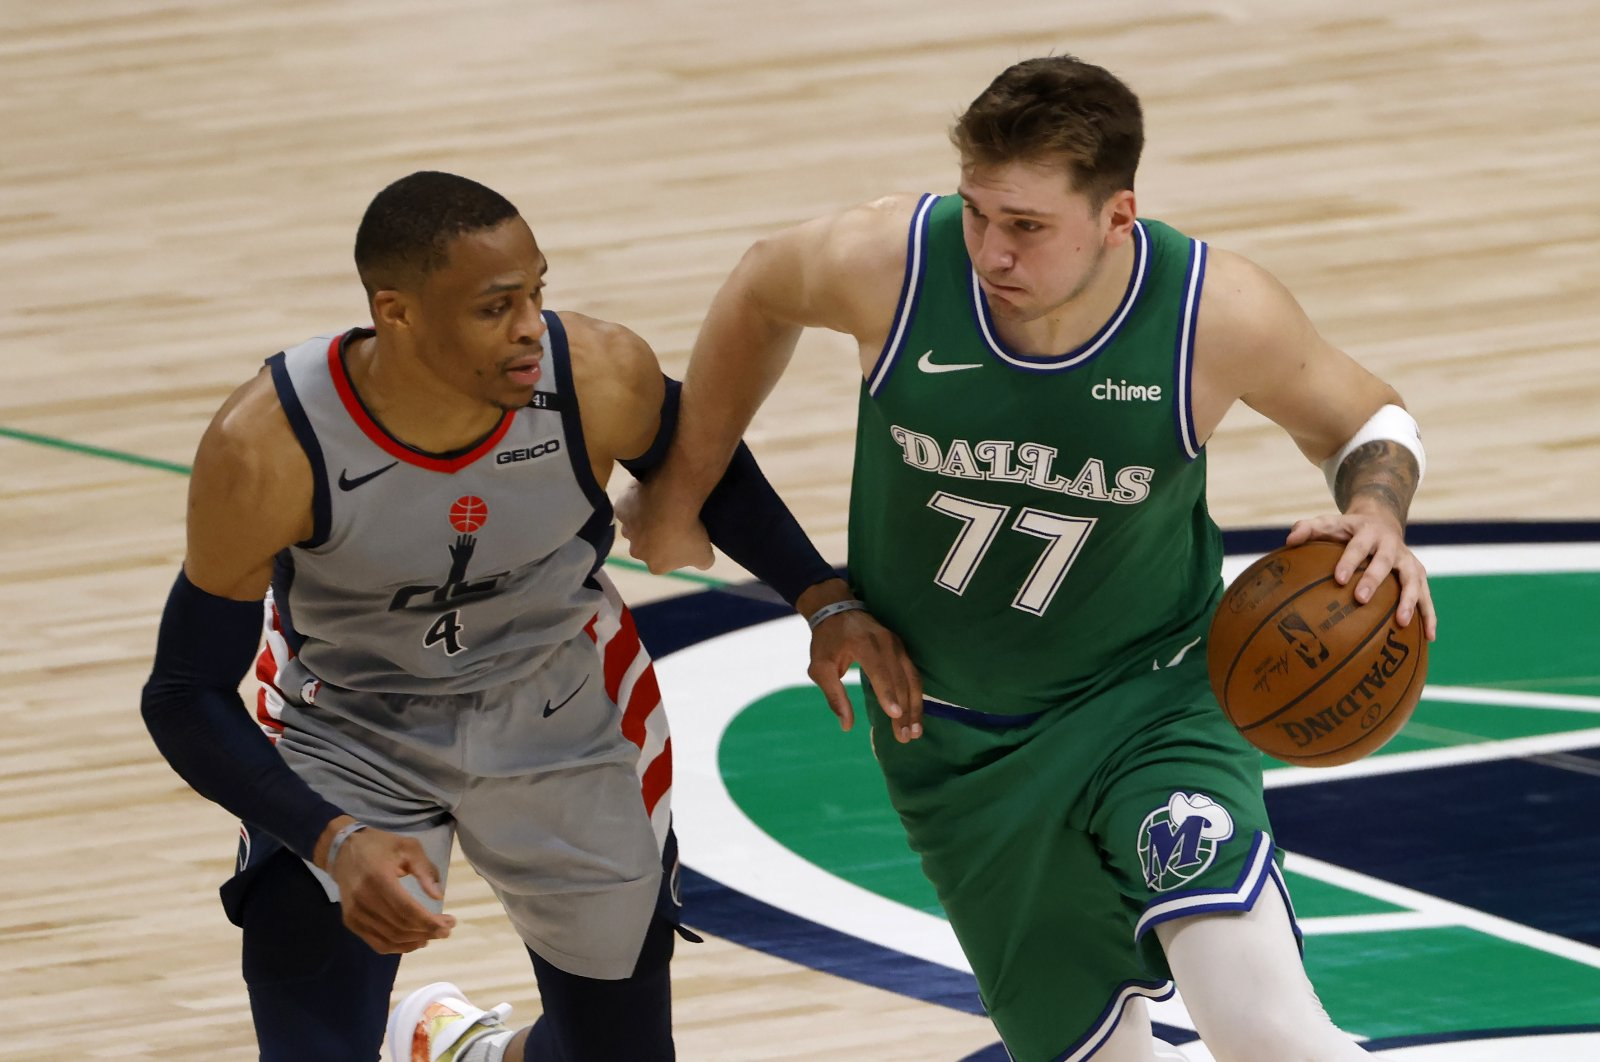 Dallas Mavericks guard Luka Doncic (R) handles the ball as Washington Wizards guard Russell Westbrook tries to slow him down during an NBA game, Dallas, U.S., May 1, 2021. (AP Photo)